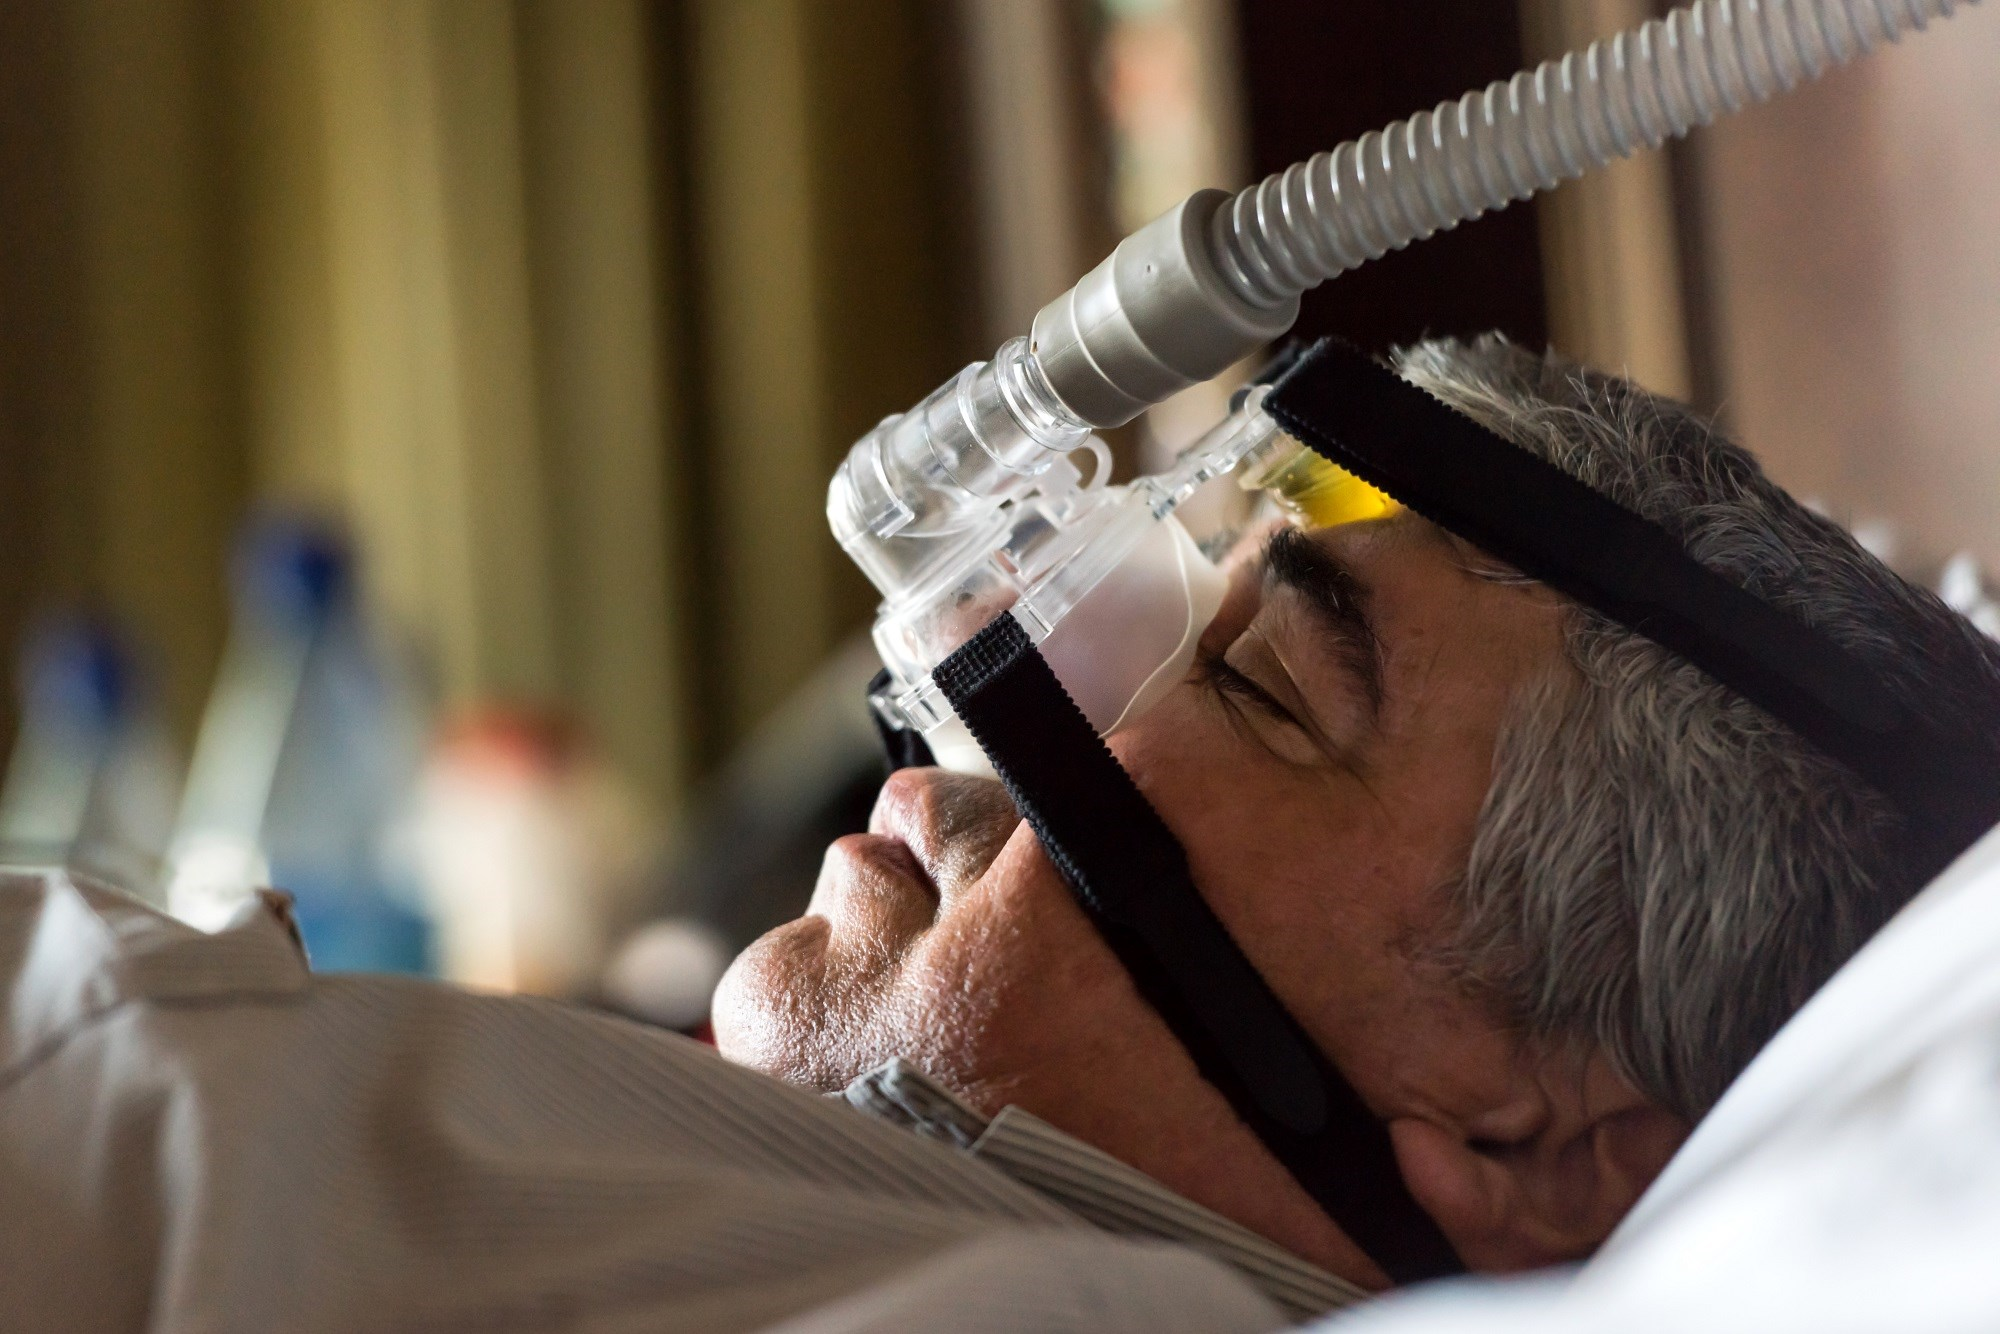 Patients With Obstructive Sleep Apnea Have Increased Risk for Gout